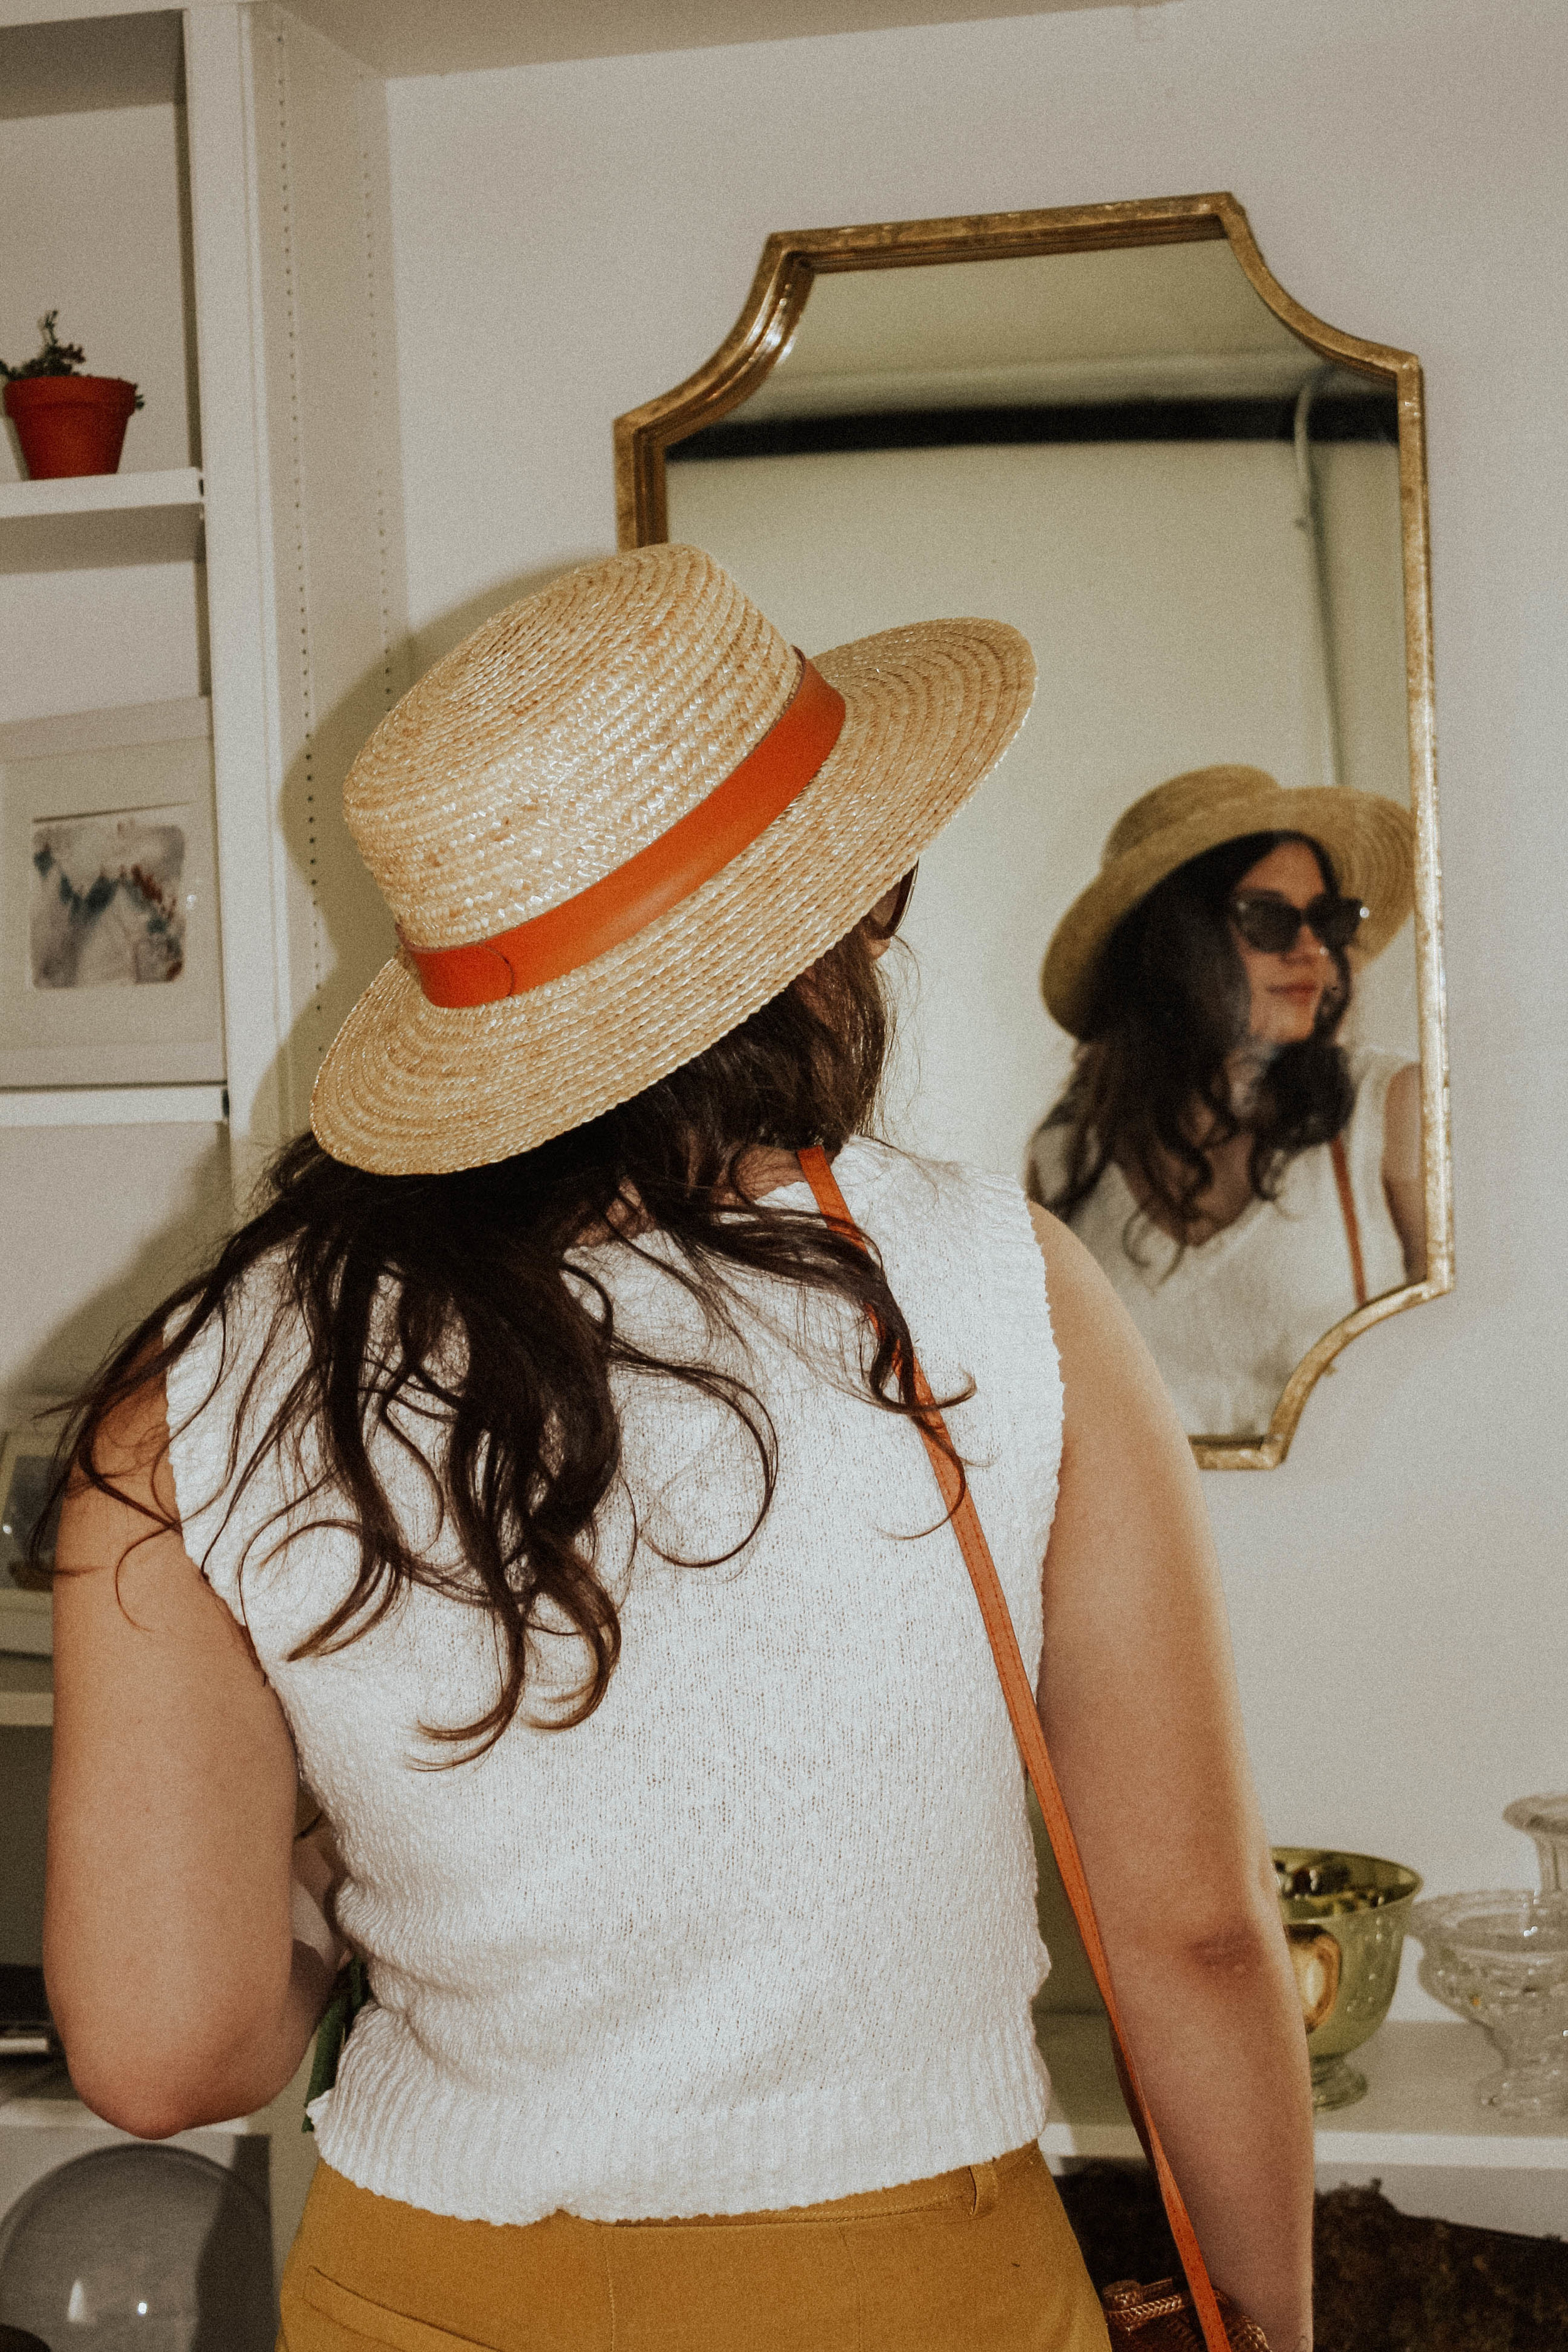 Hat: Lack of Colors; Sunglasses: Amuse Society X D'Blanc; Top: Moon River